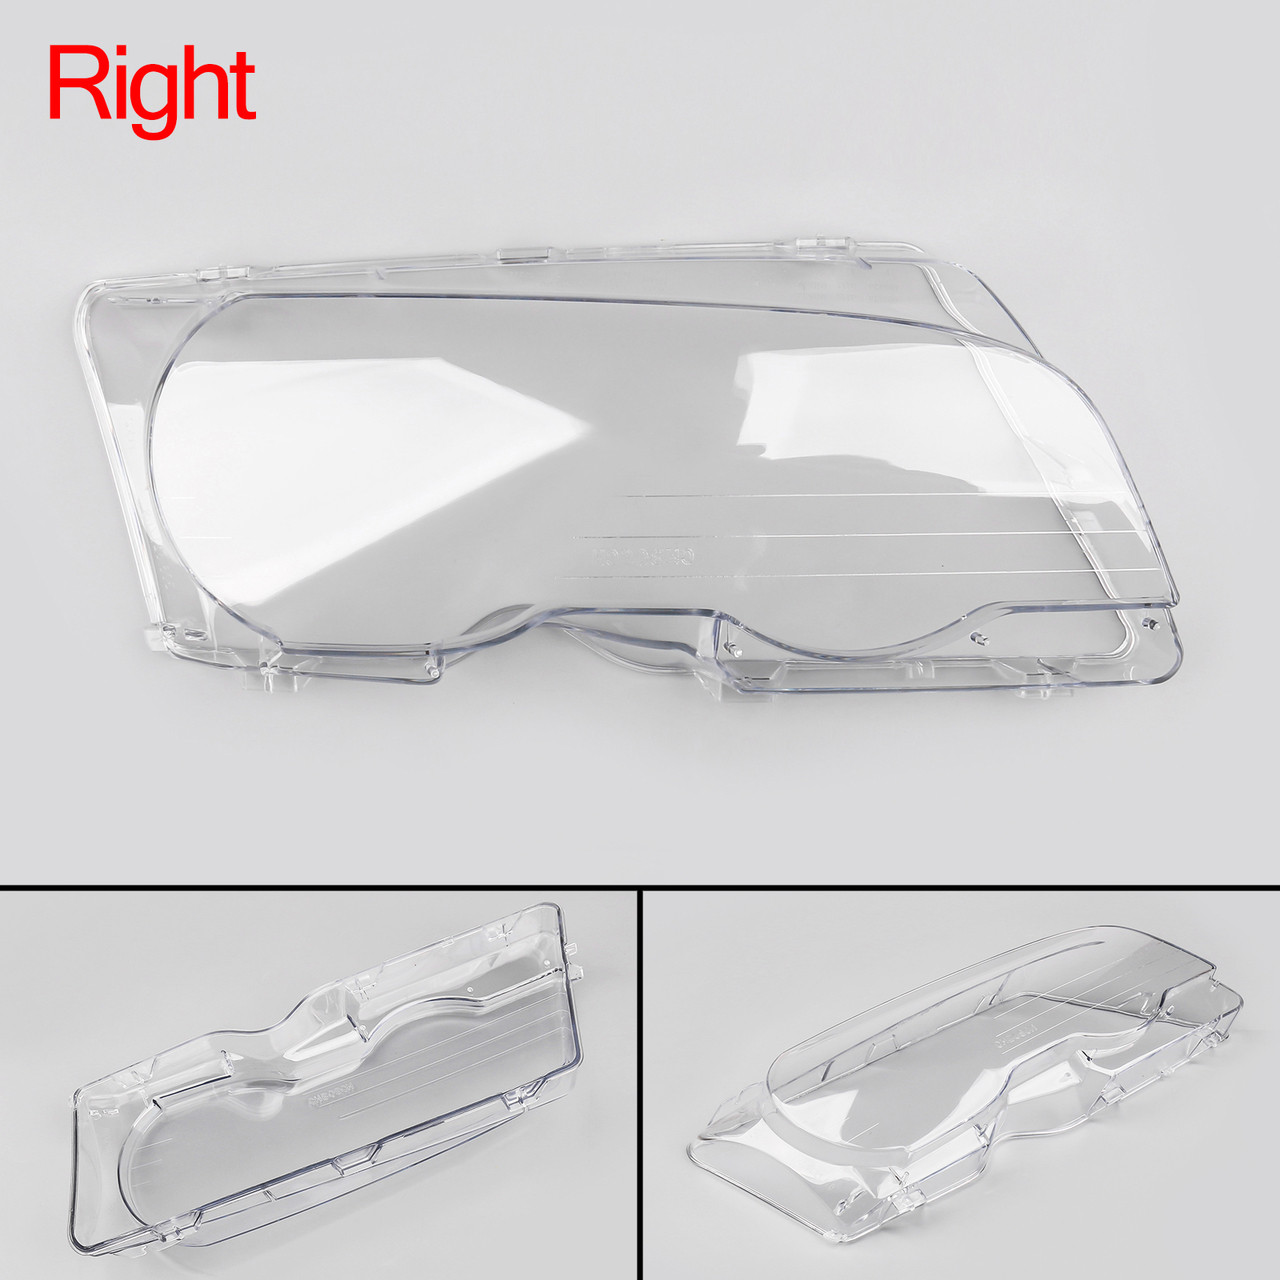 Headlight Lens Replacement Covers Right For BMW E46 2Doors (1998-2001)